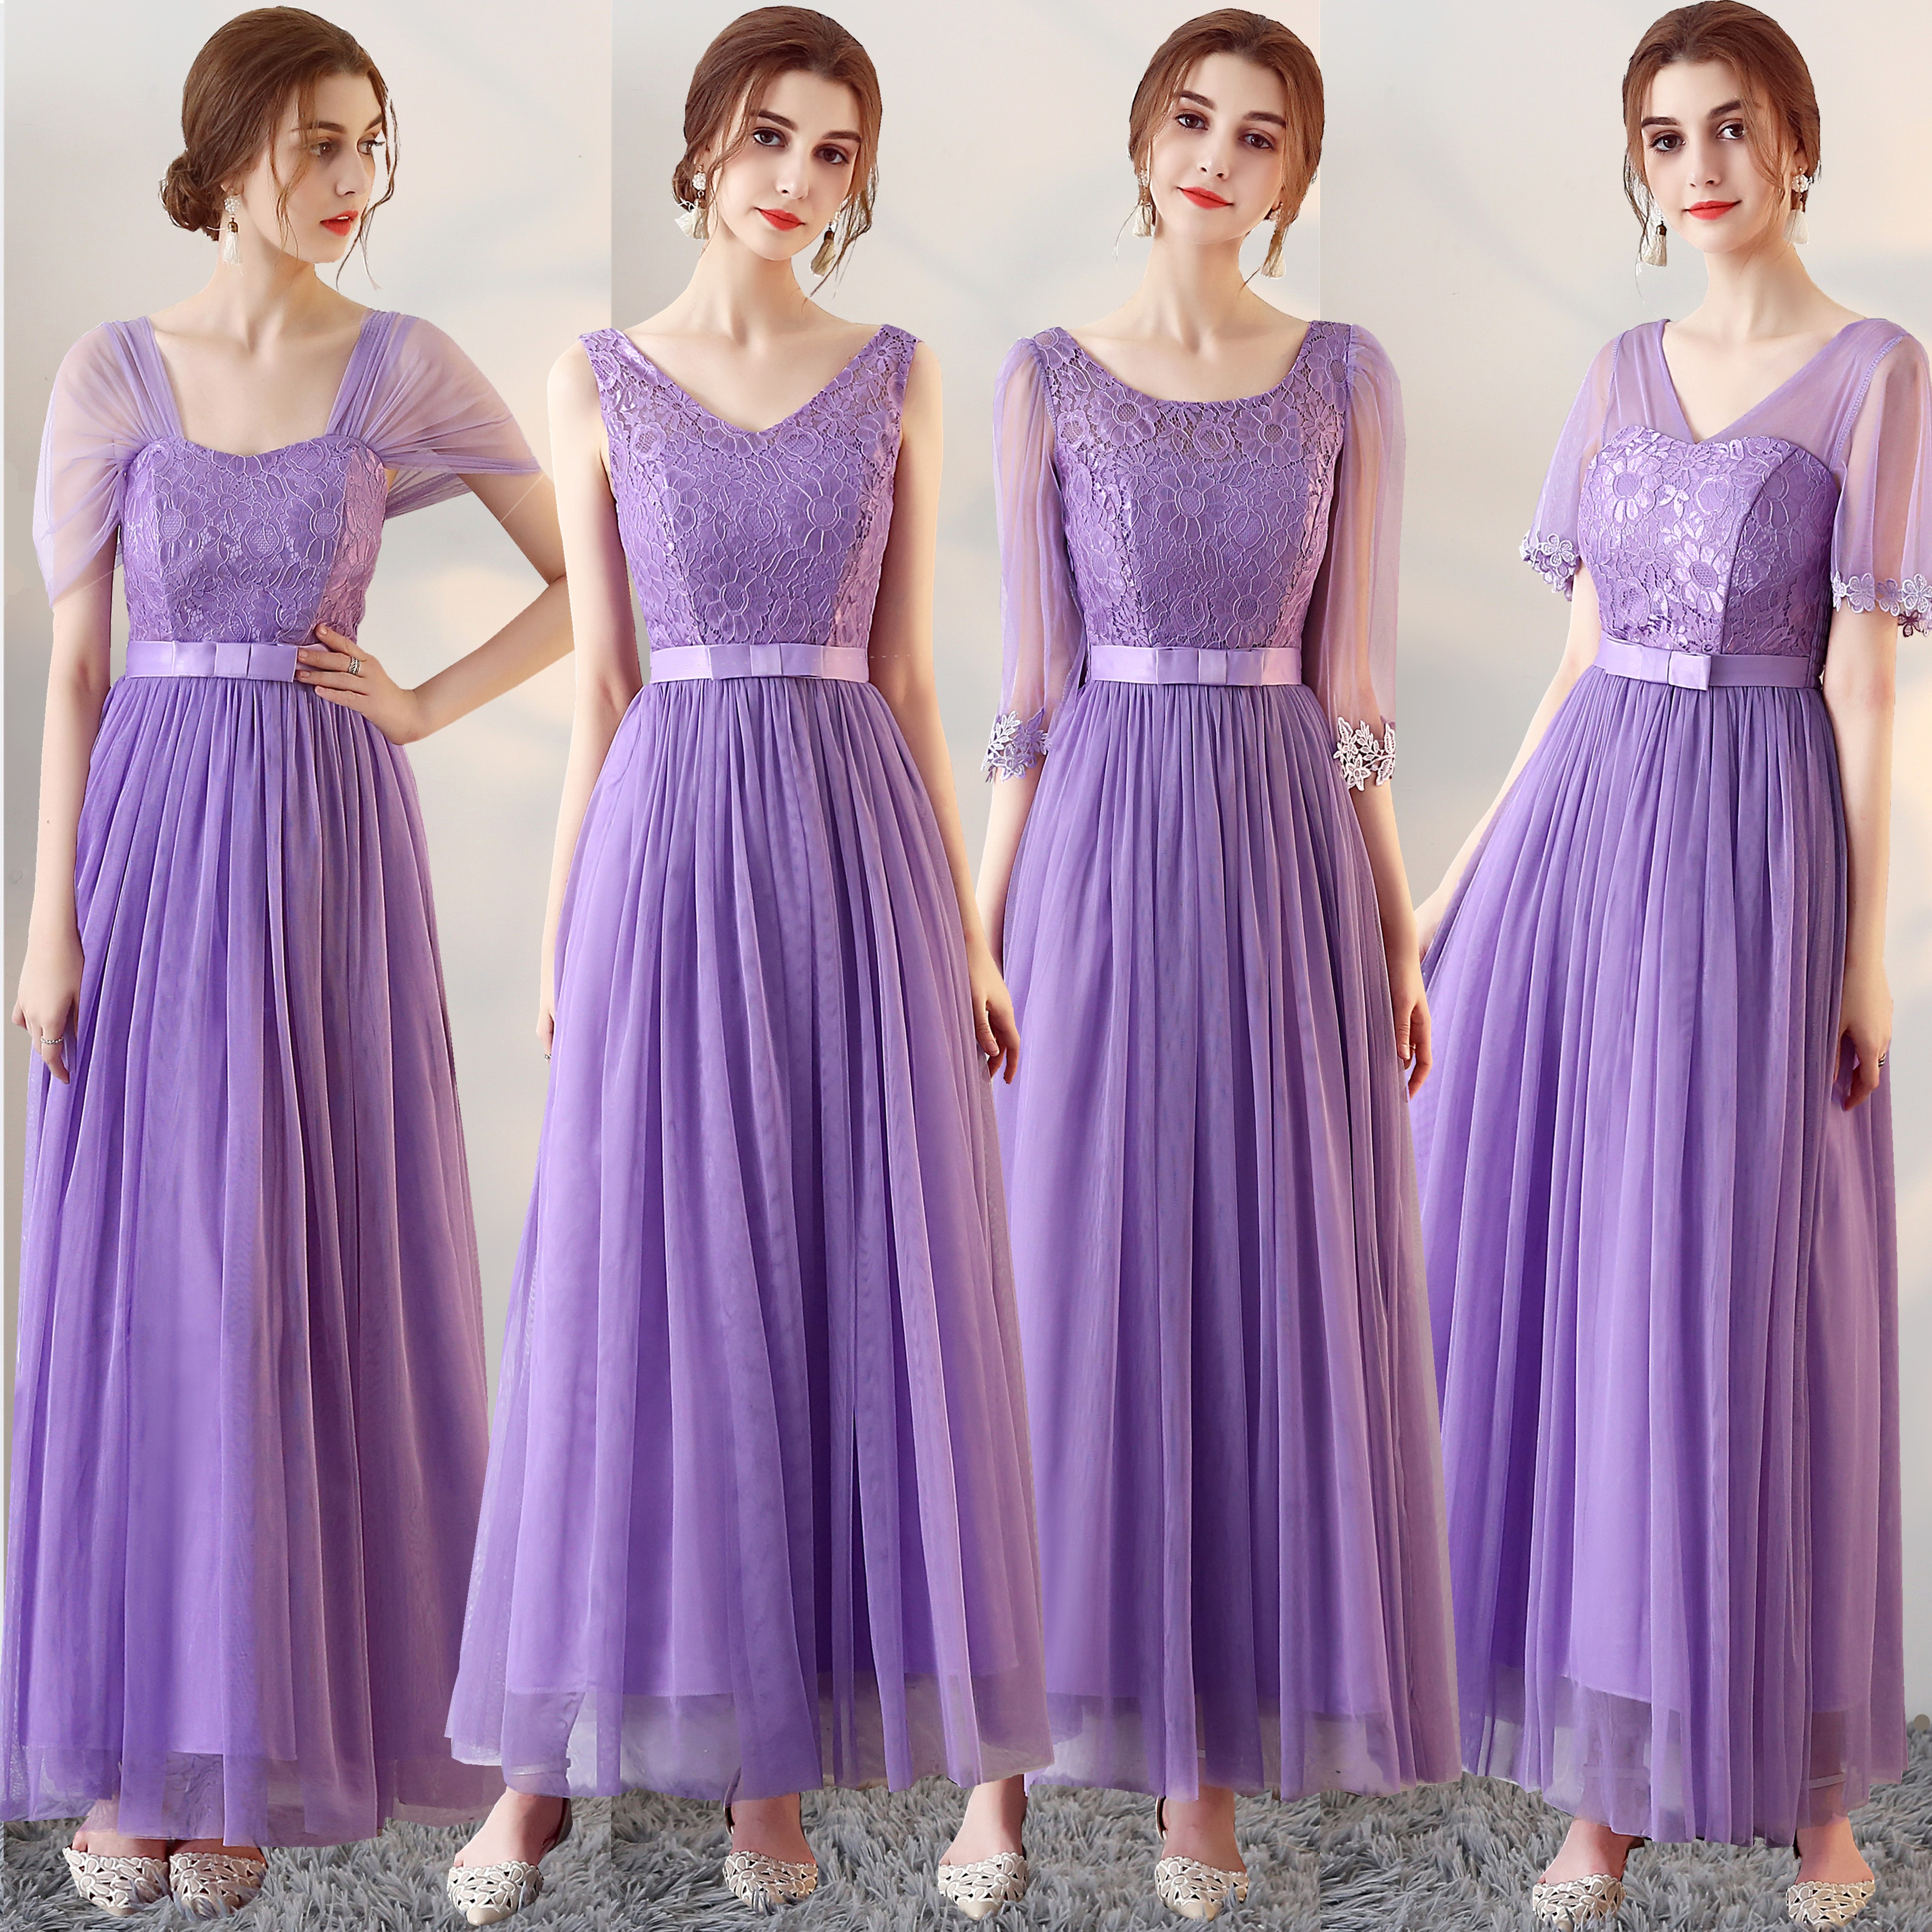 Purple Pink Bridesmaid Dresses Image collections - Braidsmaid Dress ...